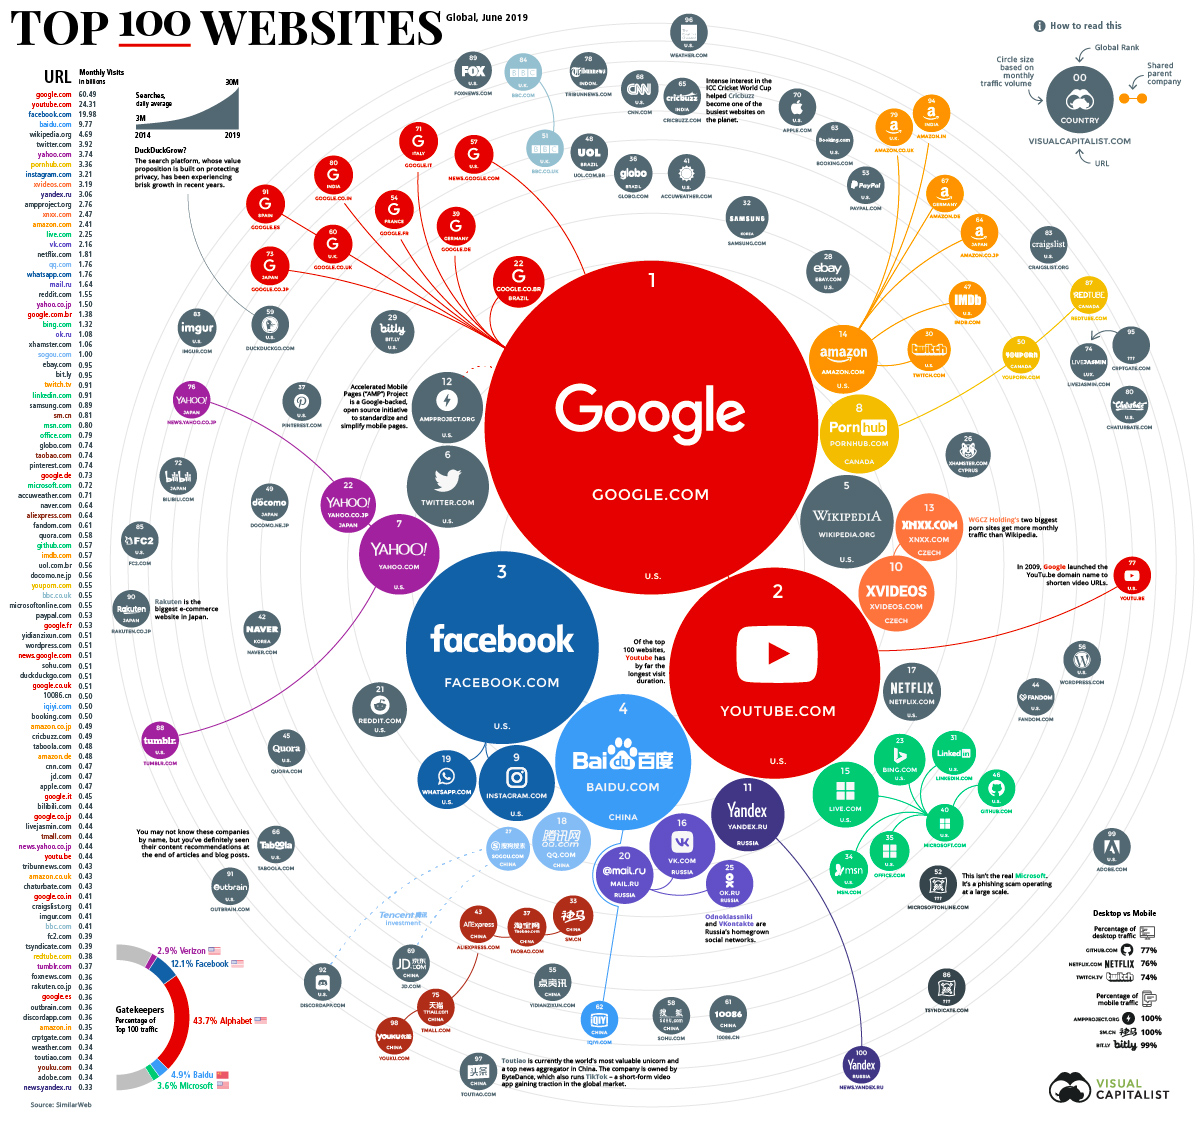 Top 100 Websites Ranking for 2019